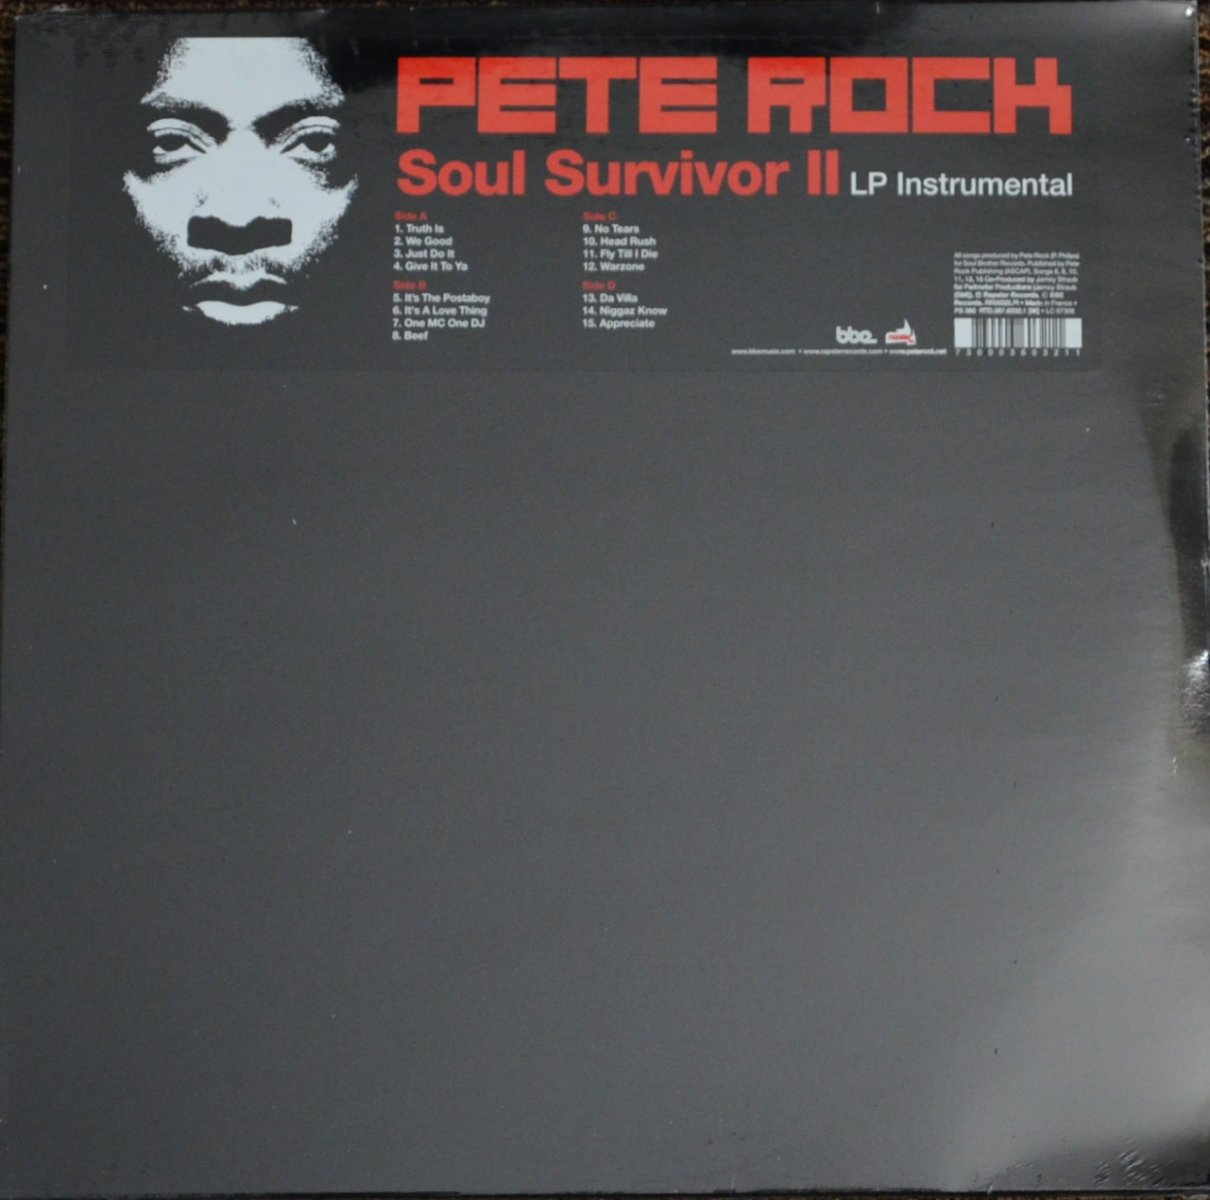 PETE ROCK / SOUL SURVIVOR �(LP INSTRUMENTAL) (2LP)